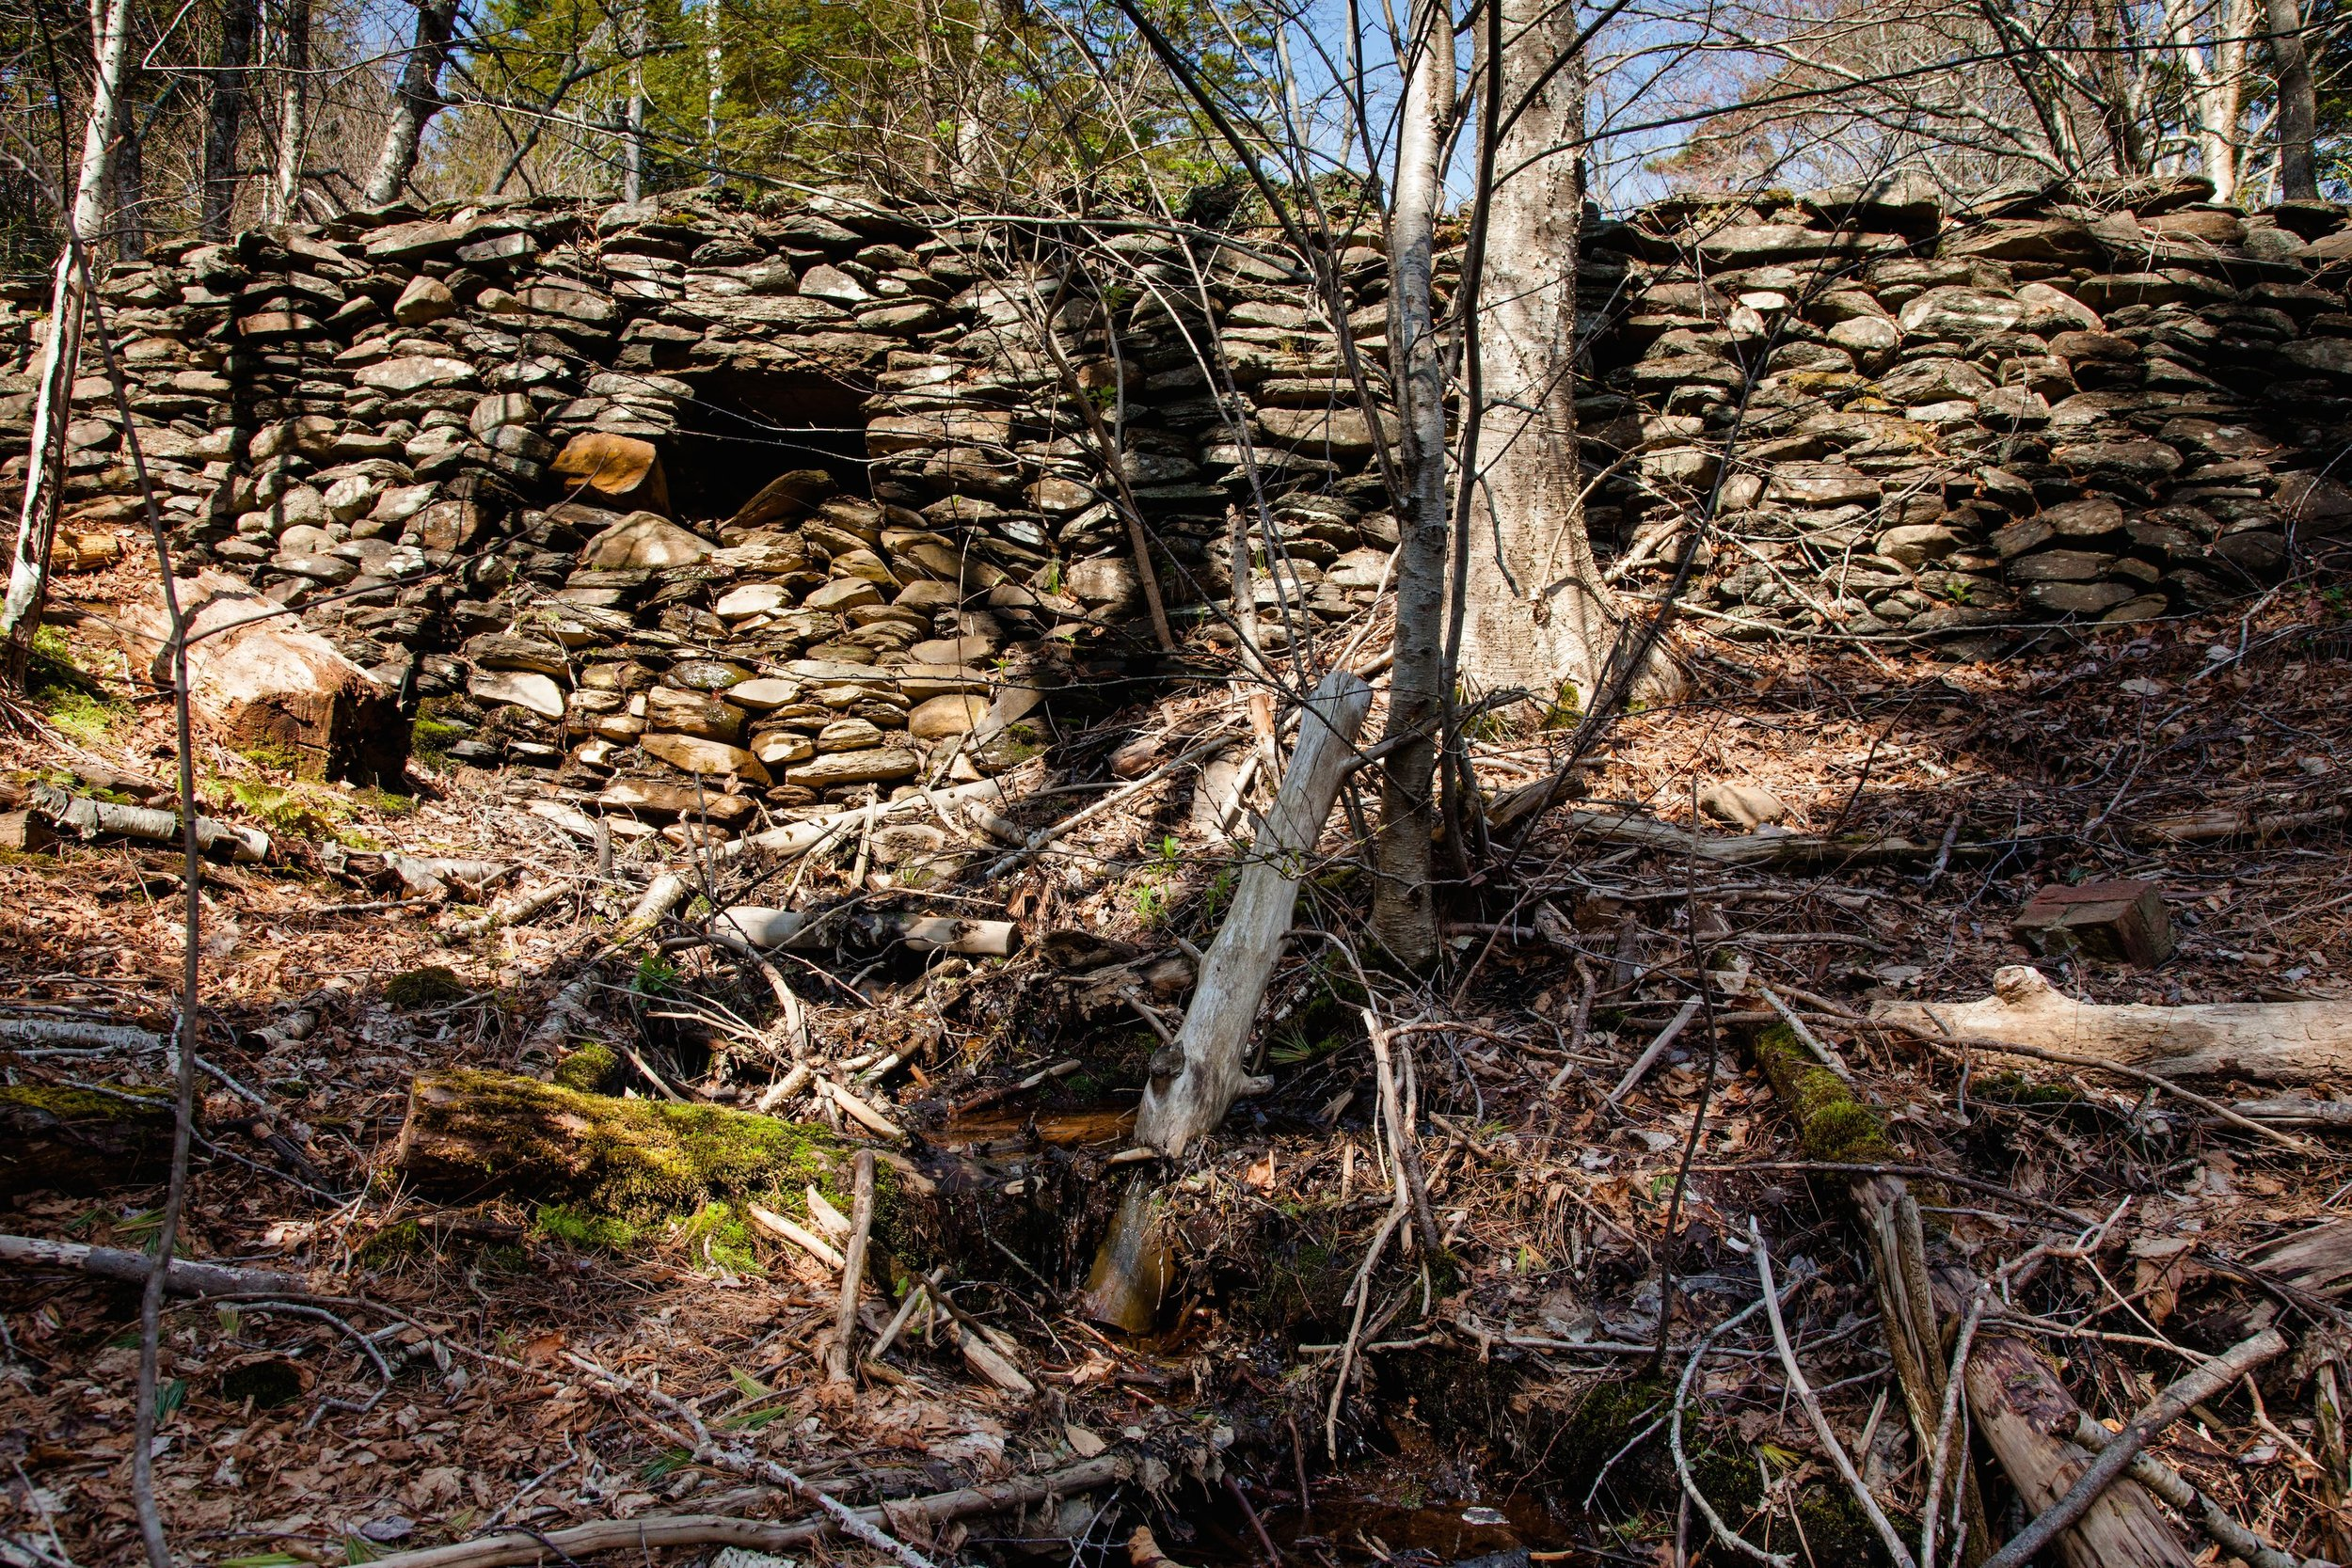 The ruins of the polar bear pit of Downs' Zoological Gardens, documented in Halifax, Spring 2015.